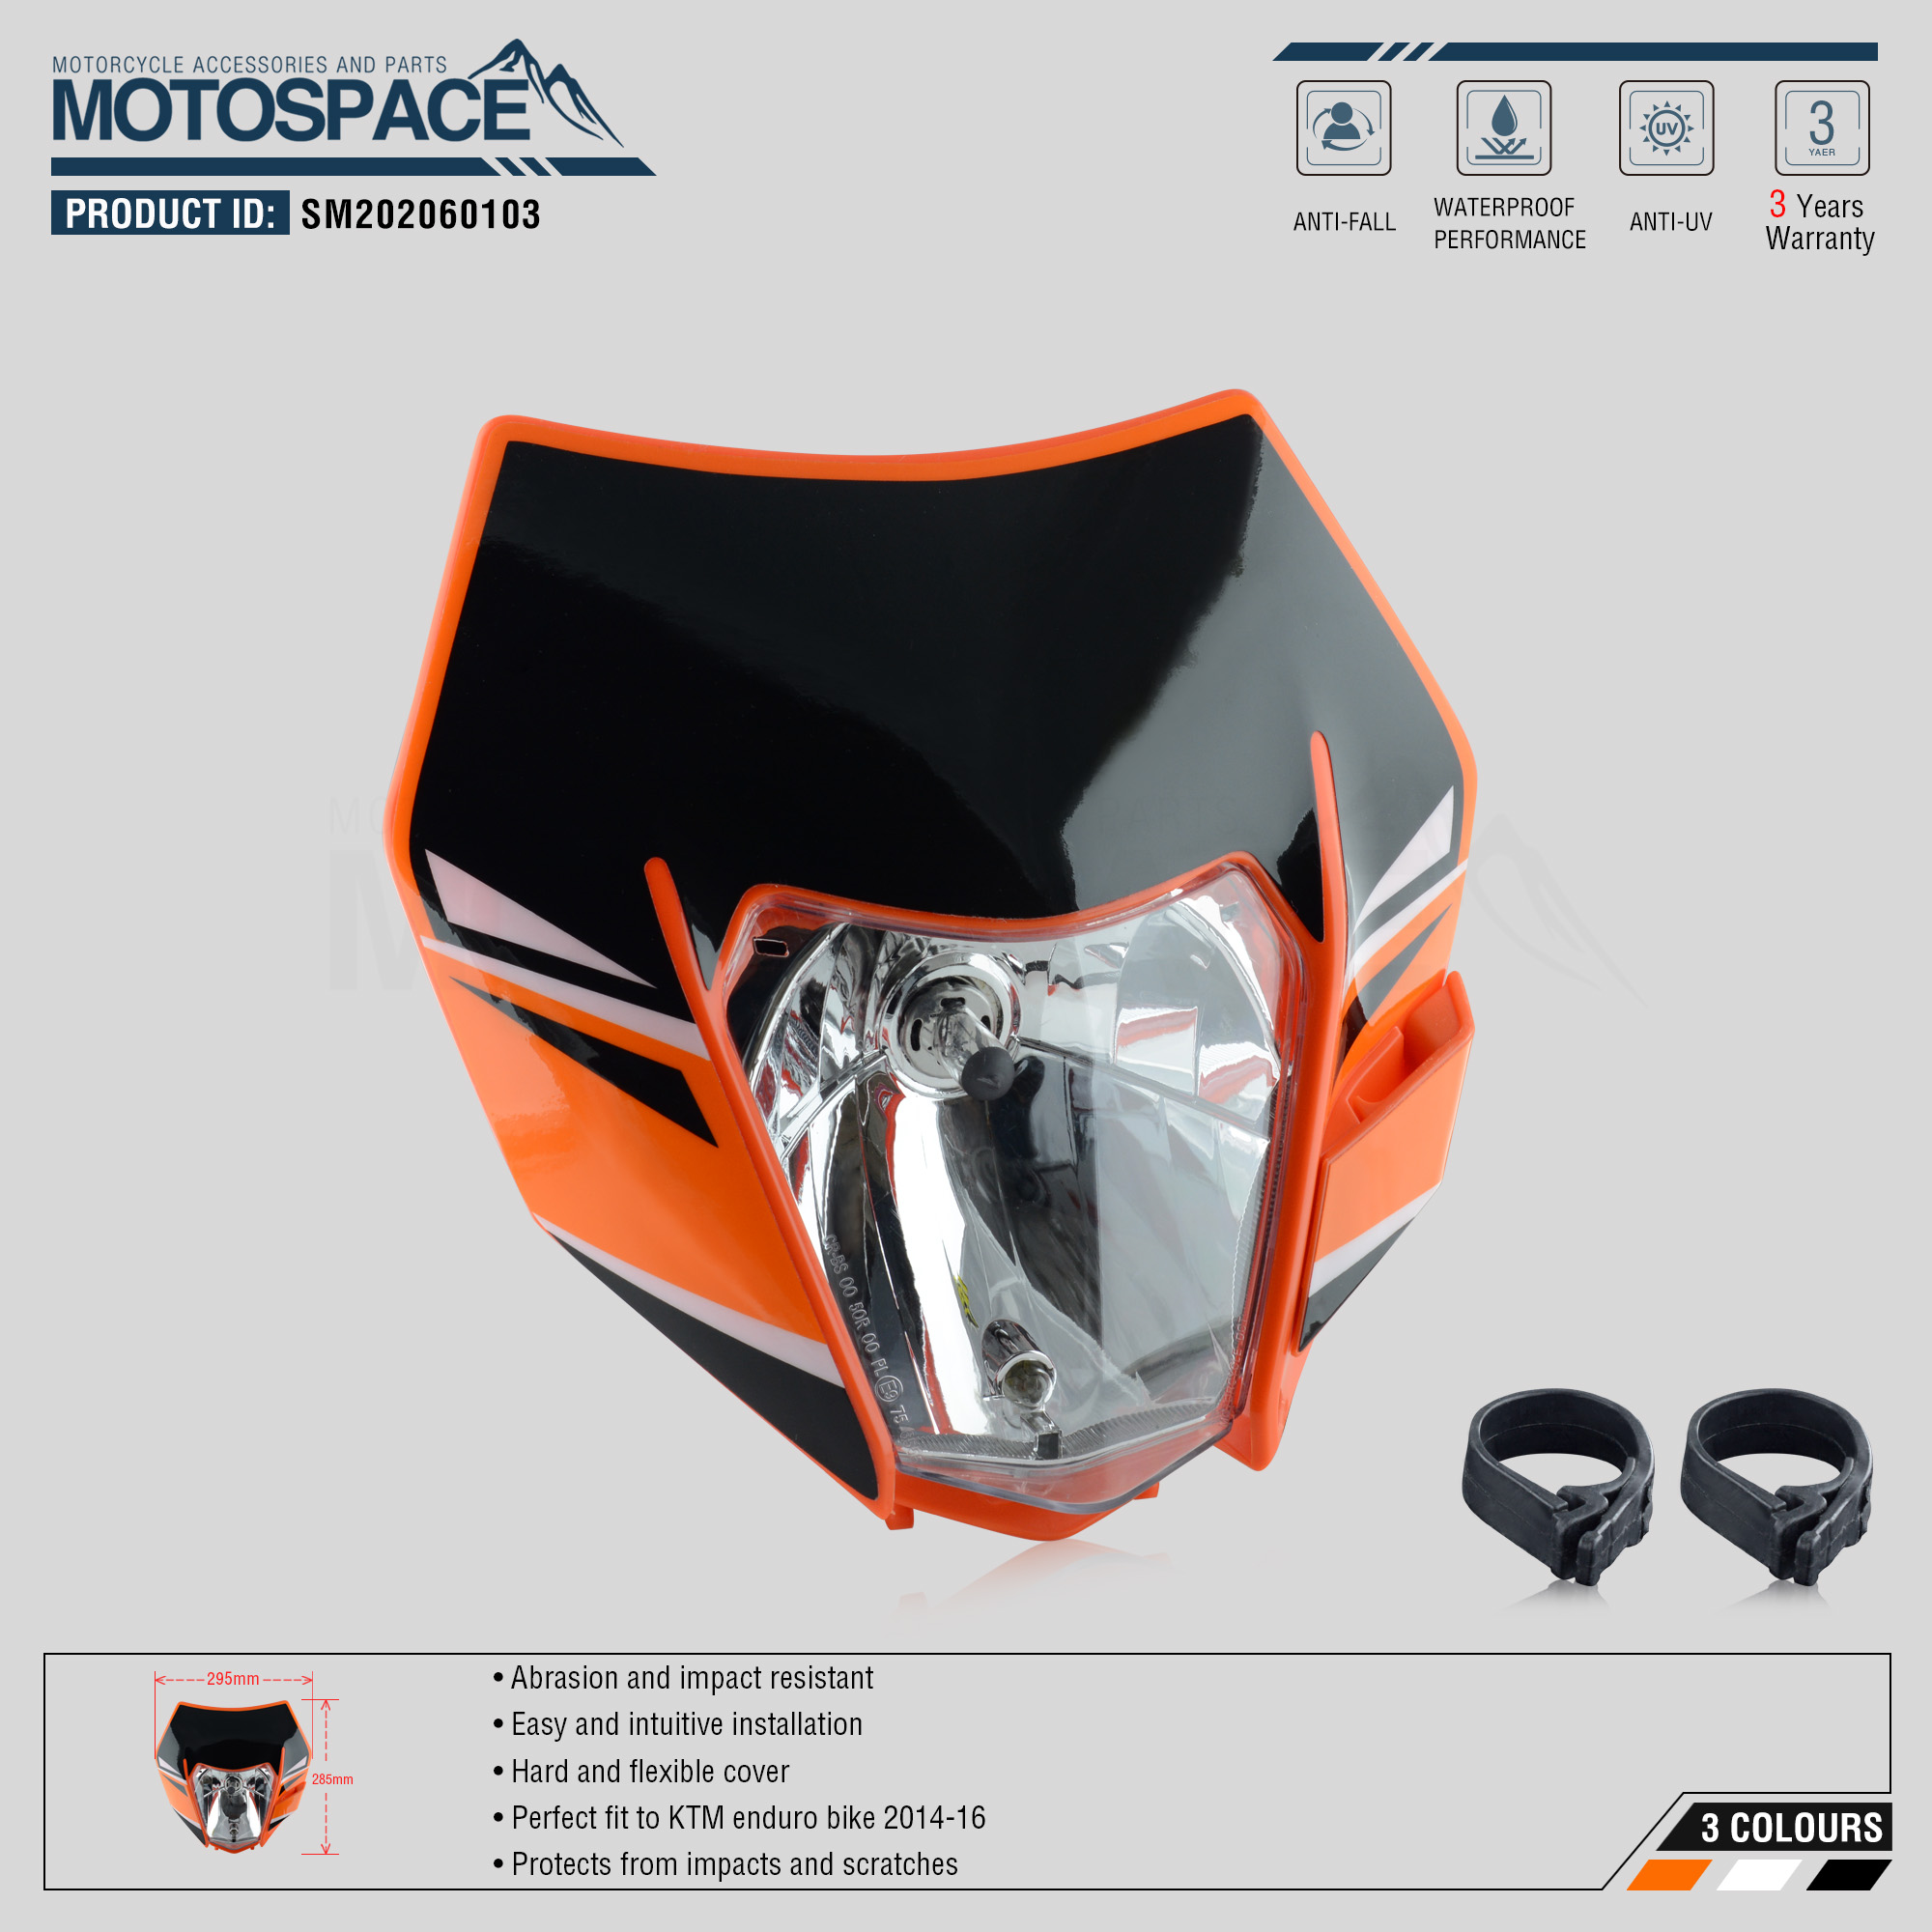 Spacemotors Headlight Headlamp With Sticker For KTM SX F EXC XCF SMR 2014 2015 2016 Motorcycle Dirt Bike MX Enduro Supermoto